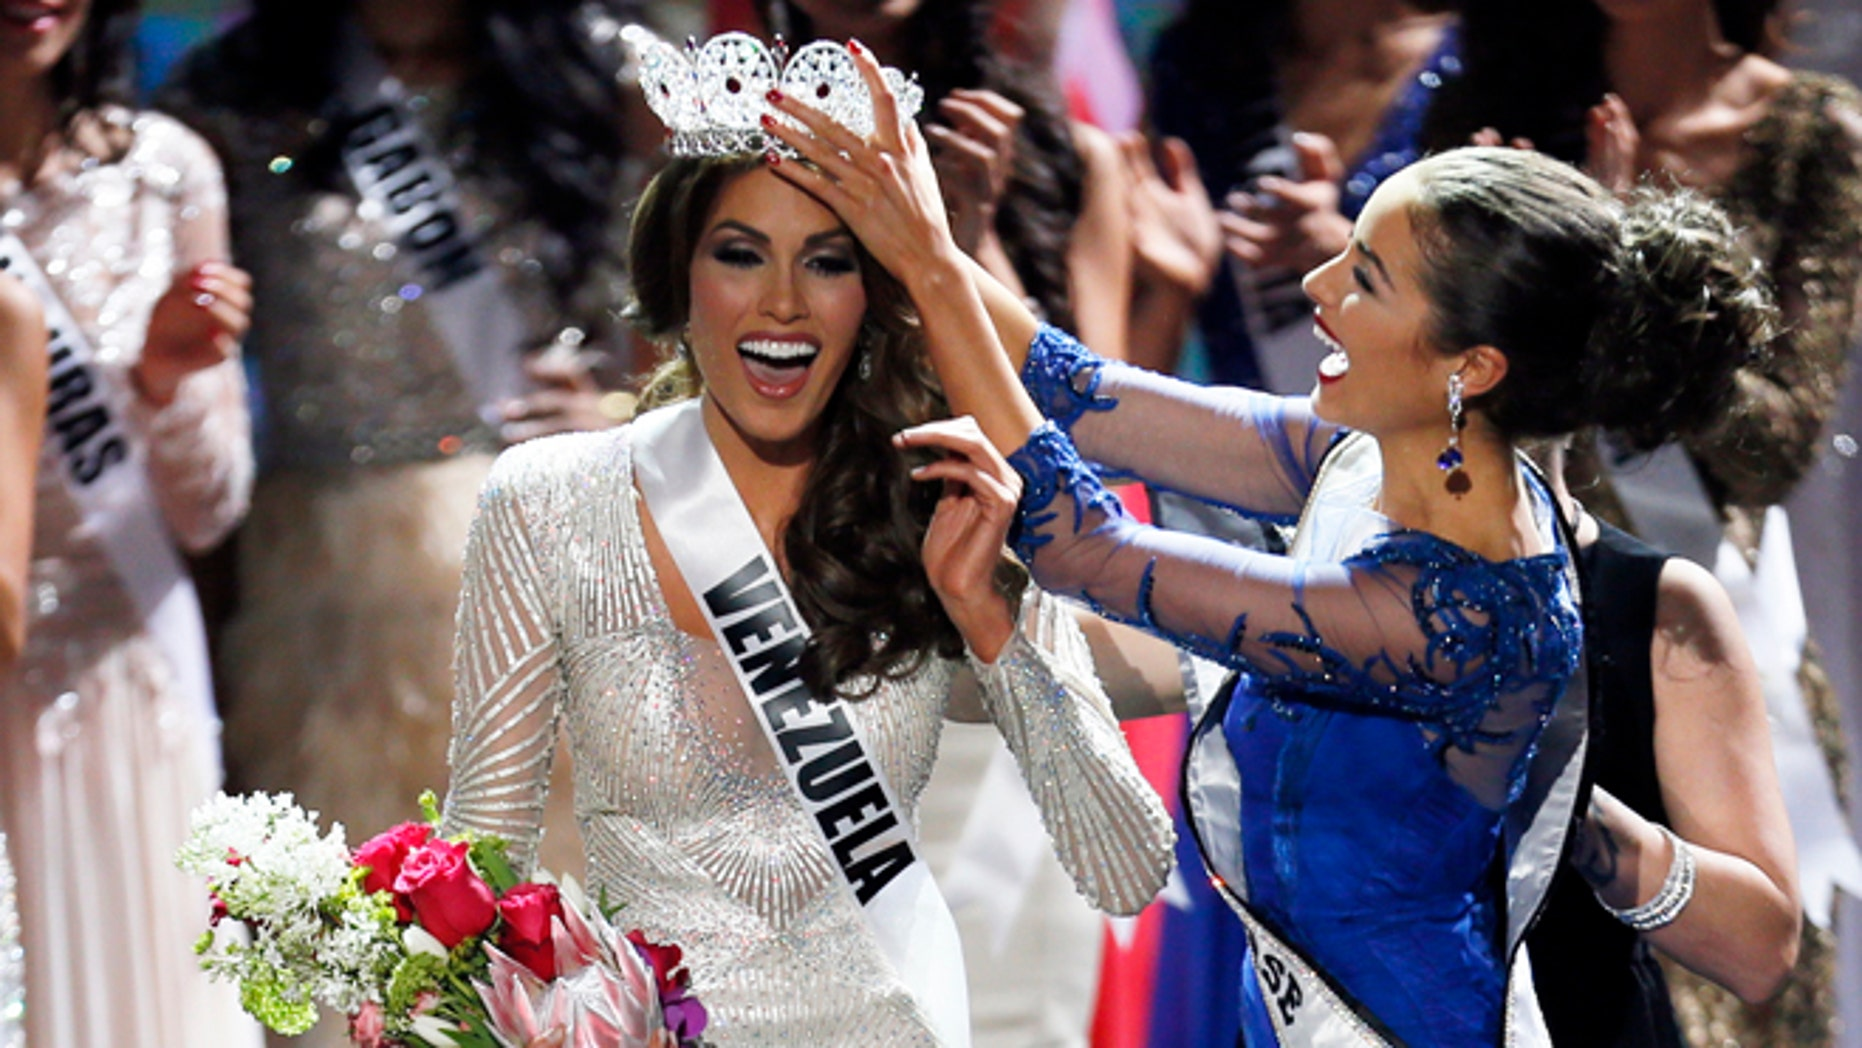 FILE  - In this Nov. 9, 2013 file photo, Miss Universe 2012 Olivia Culpo, from the United States, right, places the crown on Miss Venezuela Gabriela Isler during the 2013 Miss Universe pageant in Moscow, Russia. Isler is scheduled to attend a news conference, Thursday, Oct. 2, 2014, along with pageant owner Donald Trump to announce the next Miss Universe pageant. (AP Photo/Pavel Golovkin, File)